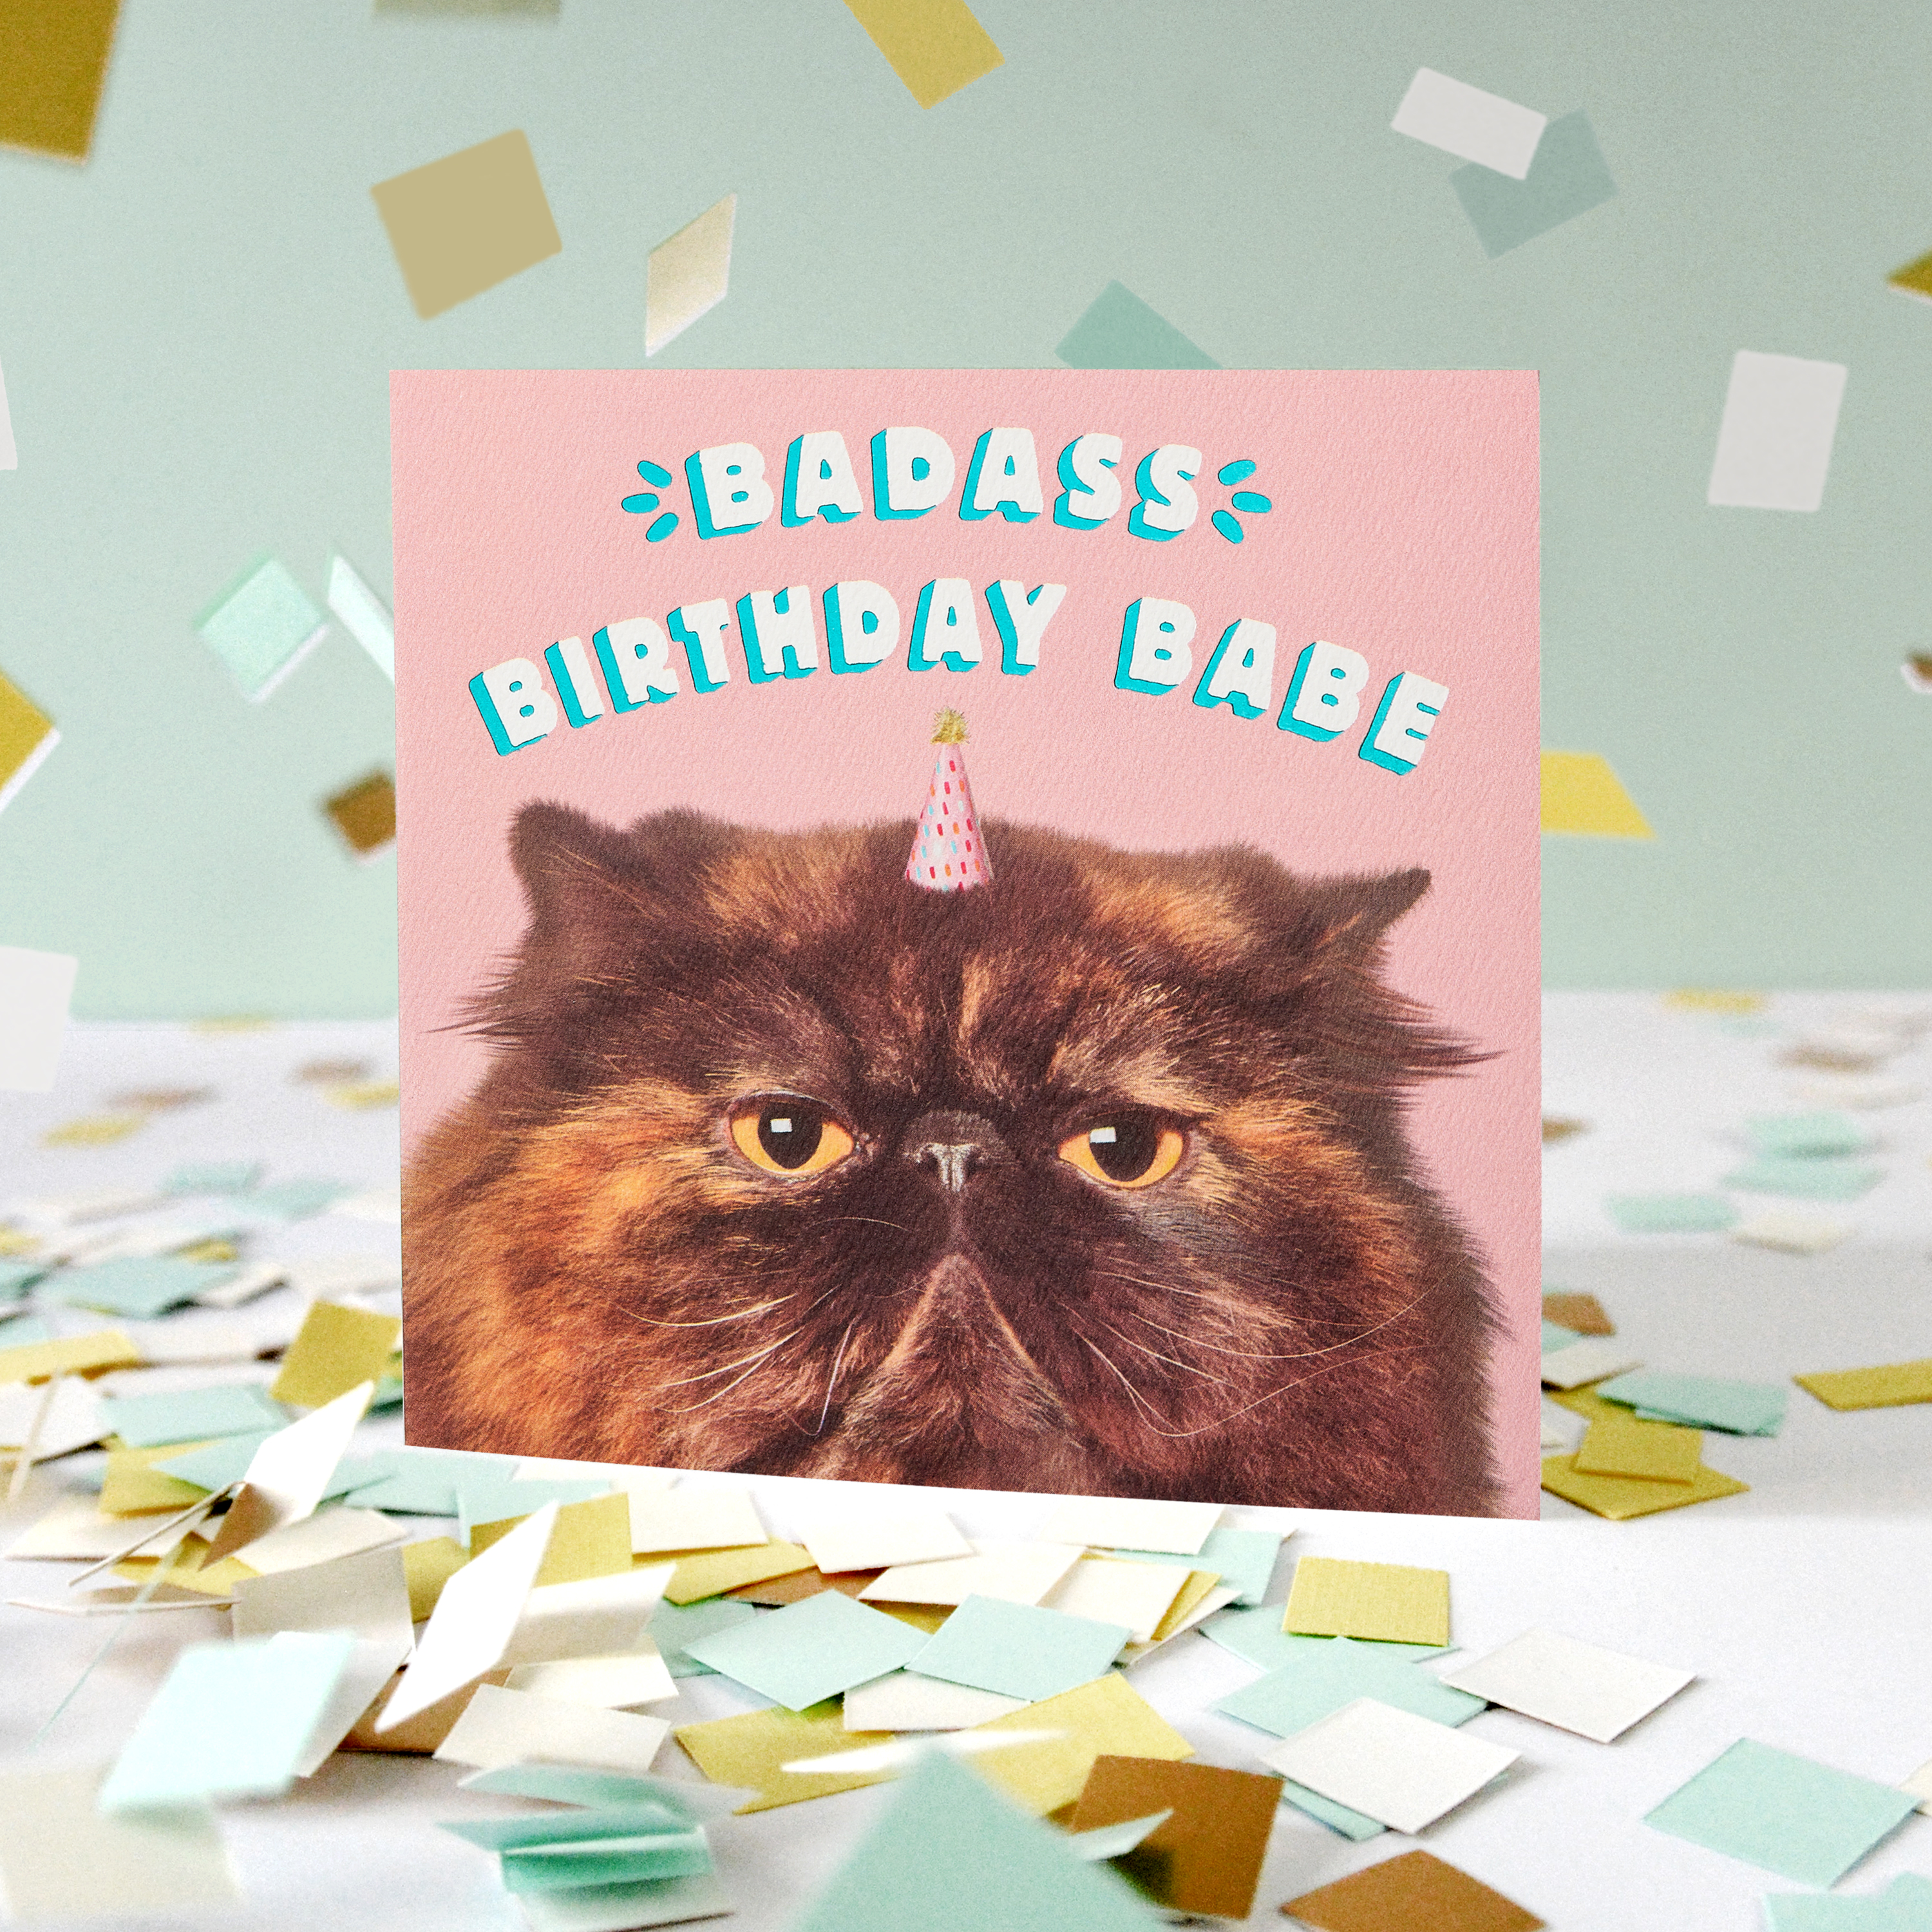 Birthday Babe Birthday Greeting Card for Her  image